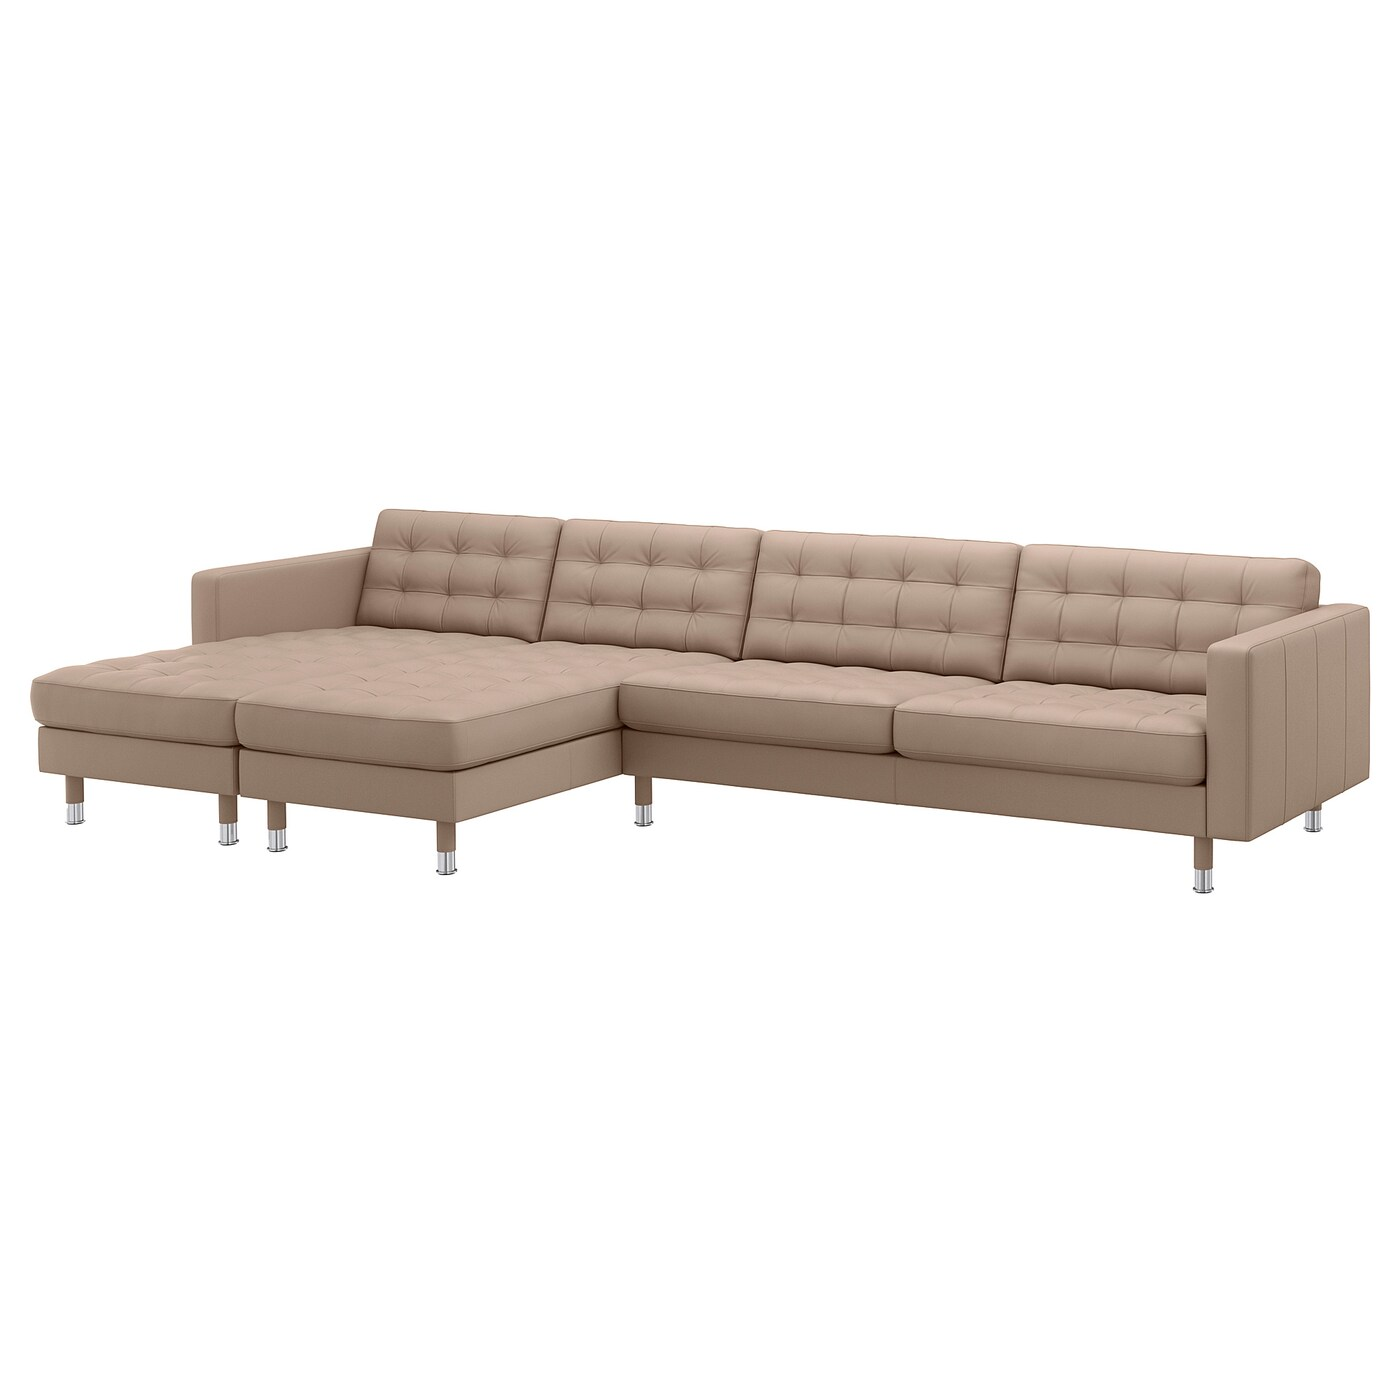 Landskrona 5 Seat Sofa With Chaise Longues Grann Bomstad Dark Beige Metal Ikea